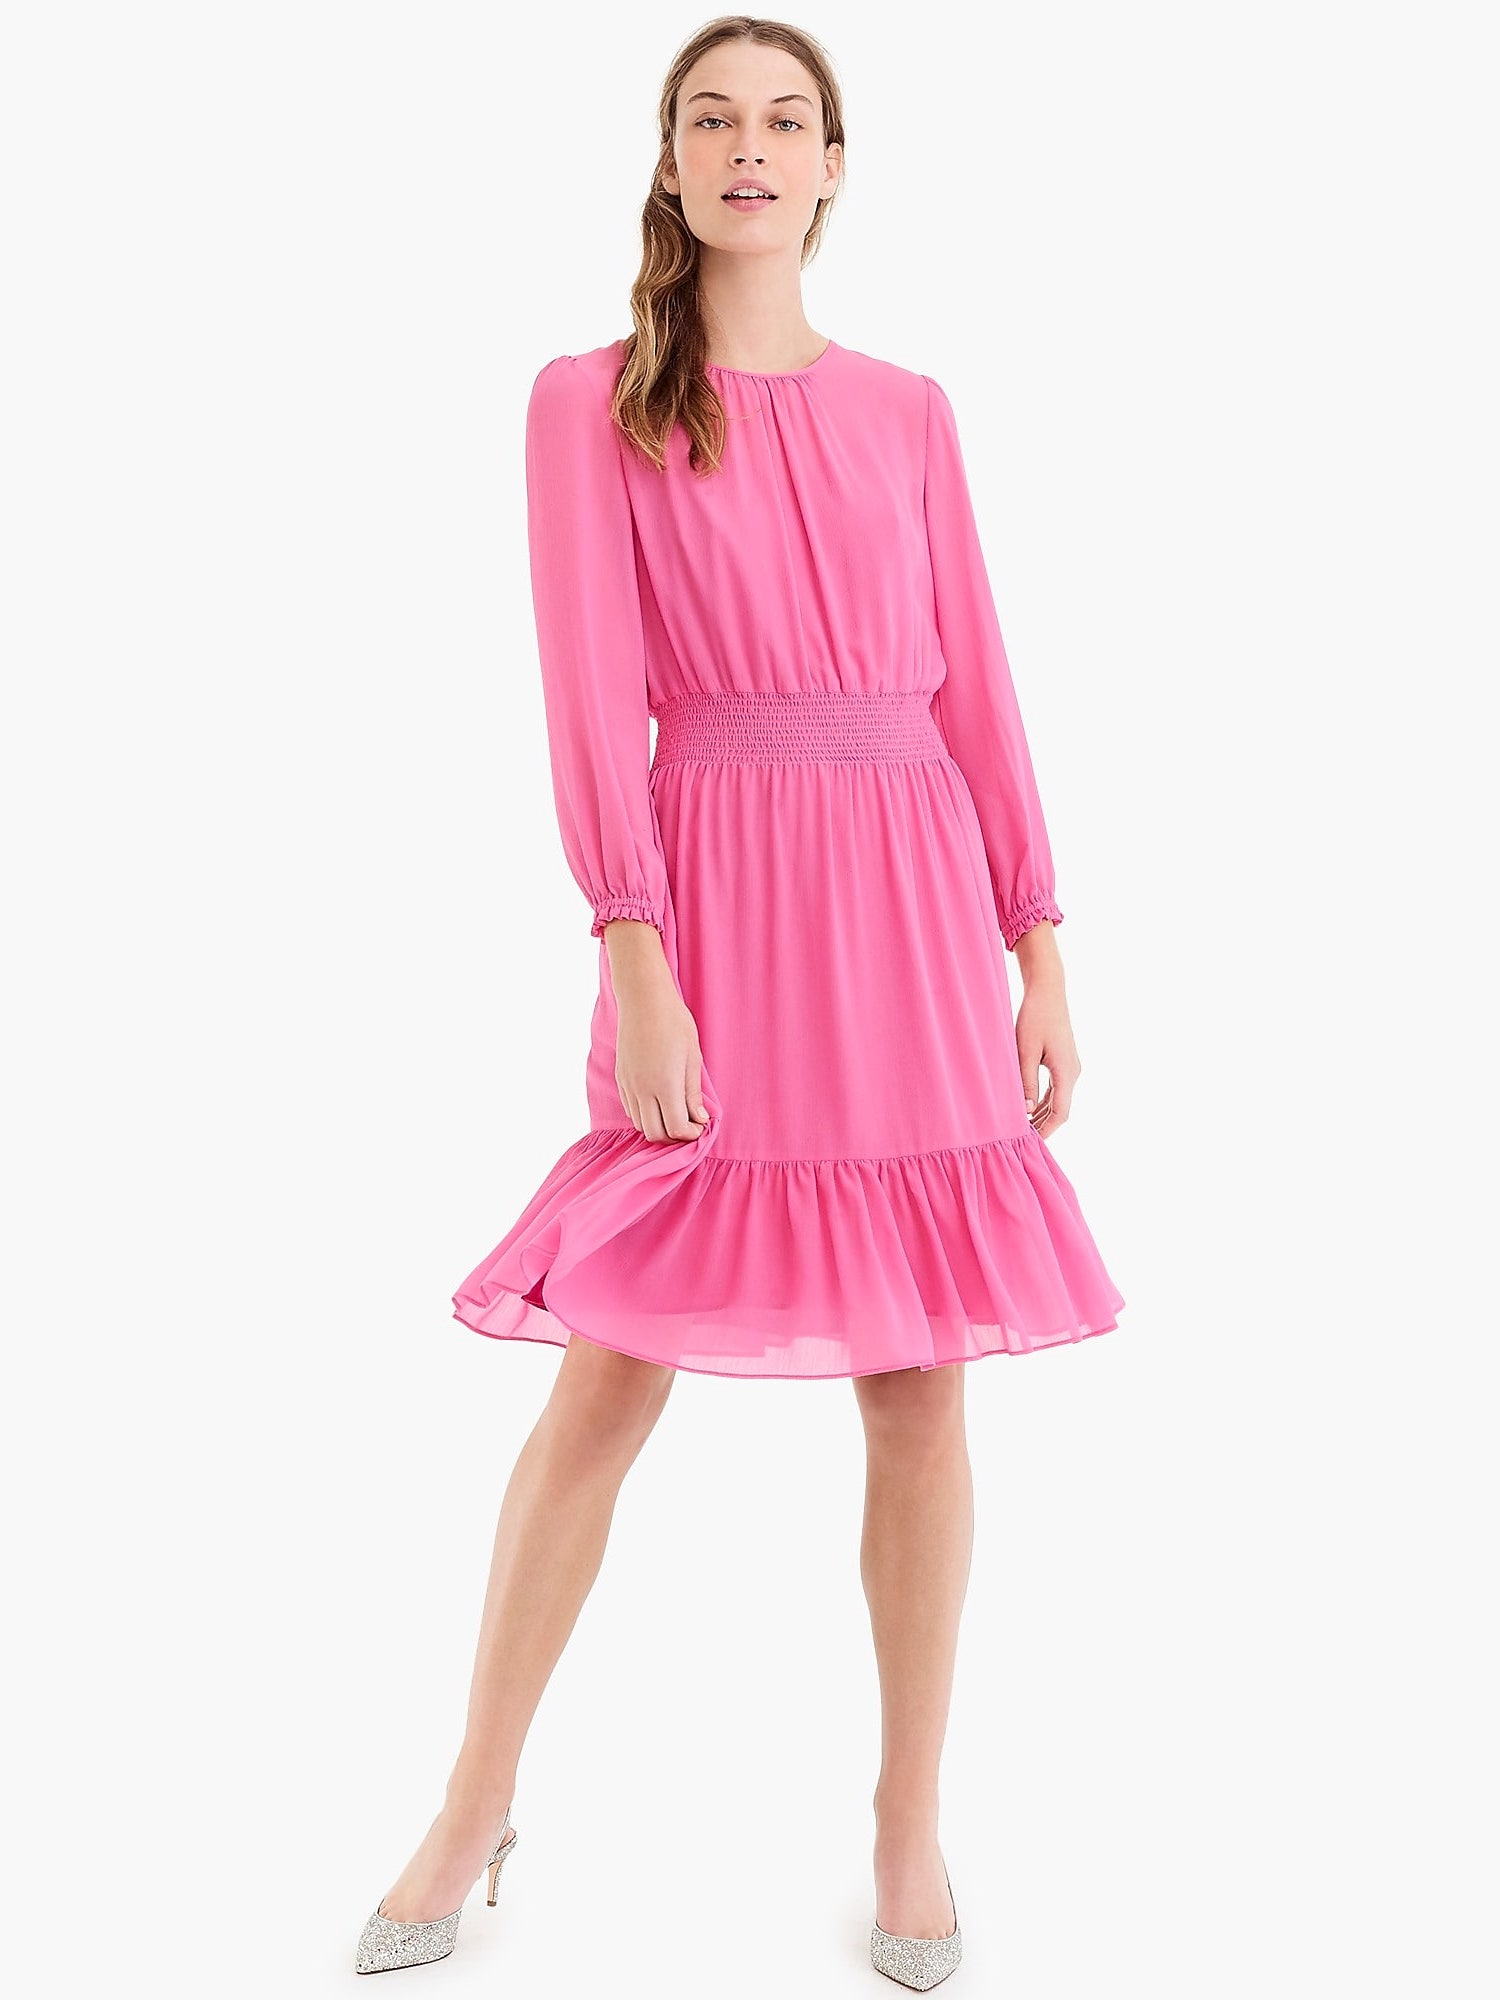 J.Crew Cinched-Waist Dress in Chiffon